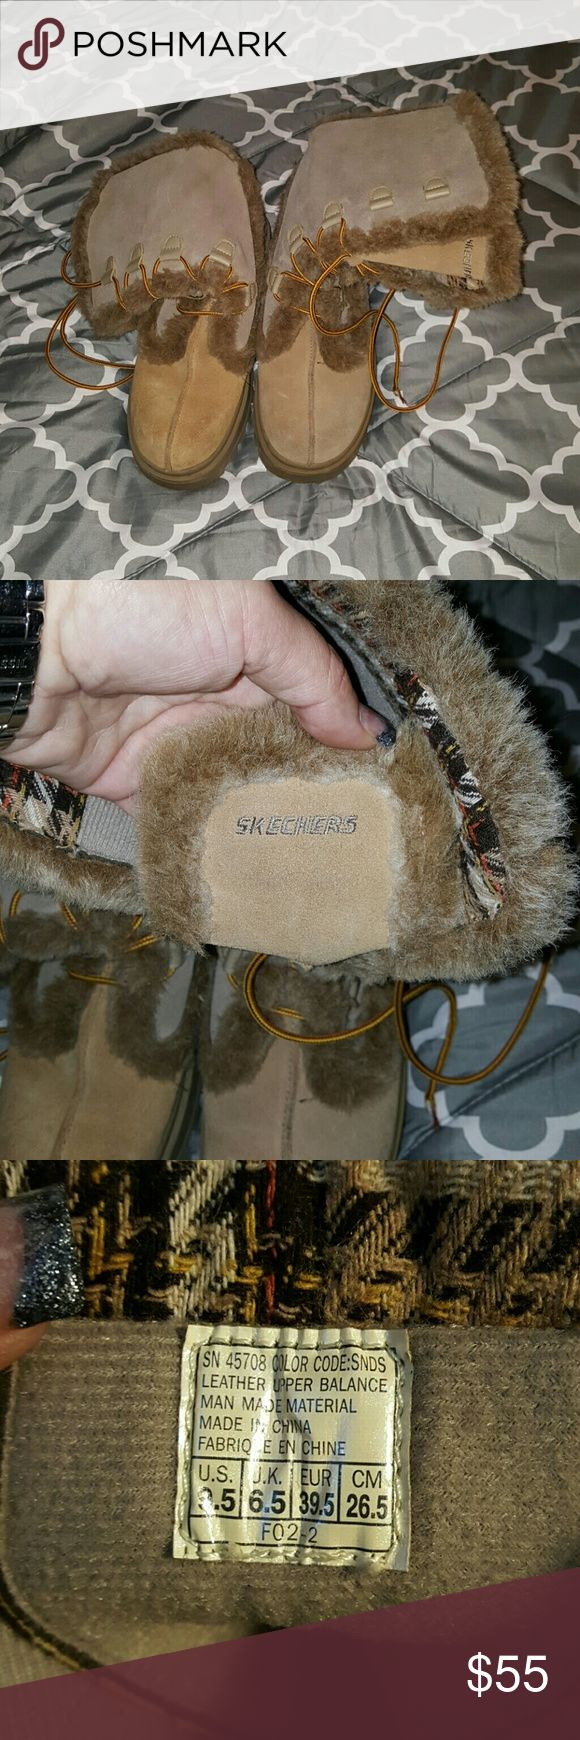 Sketchers boots great condition Really cute boots Skechers Shoes Lace Up Boots